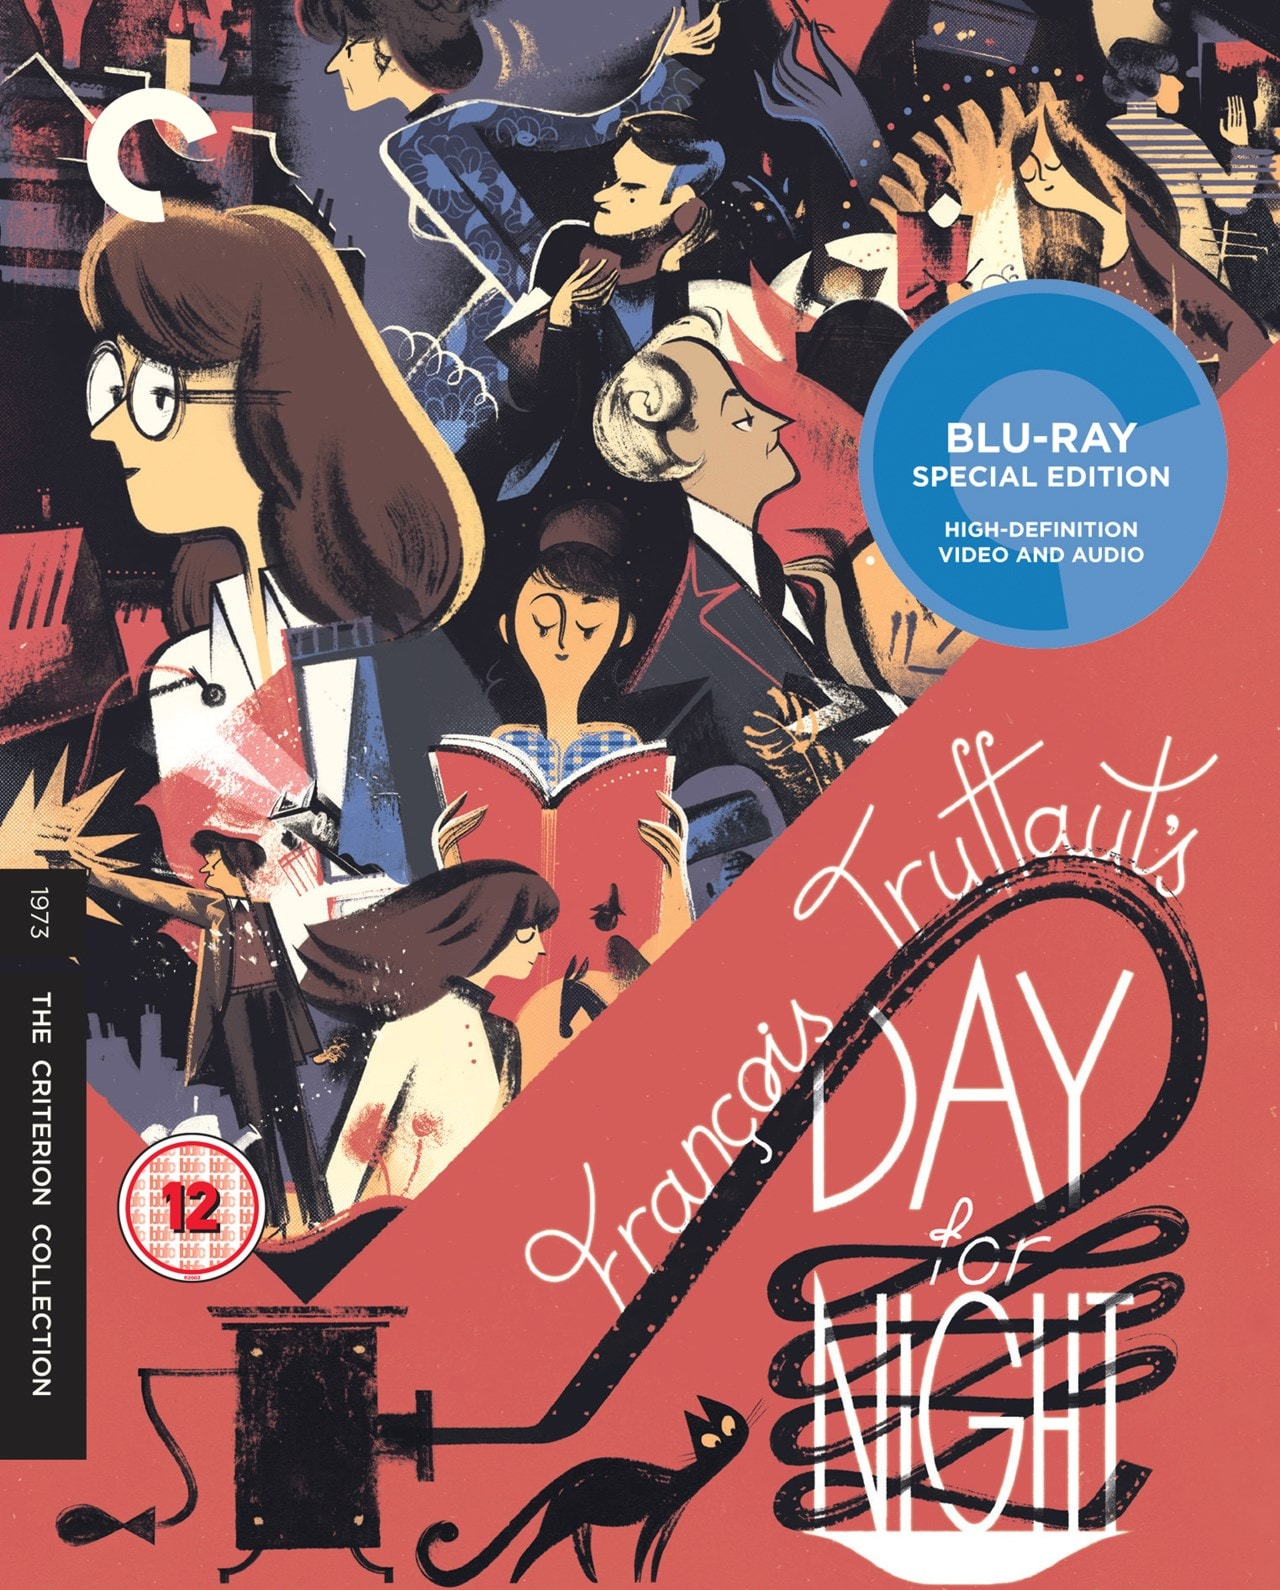 Day for Night - The Criterion Collection - 1